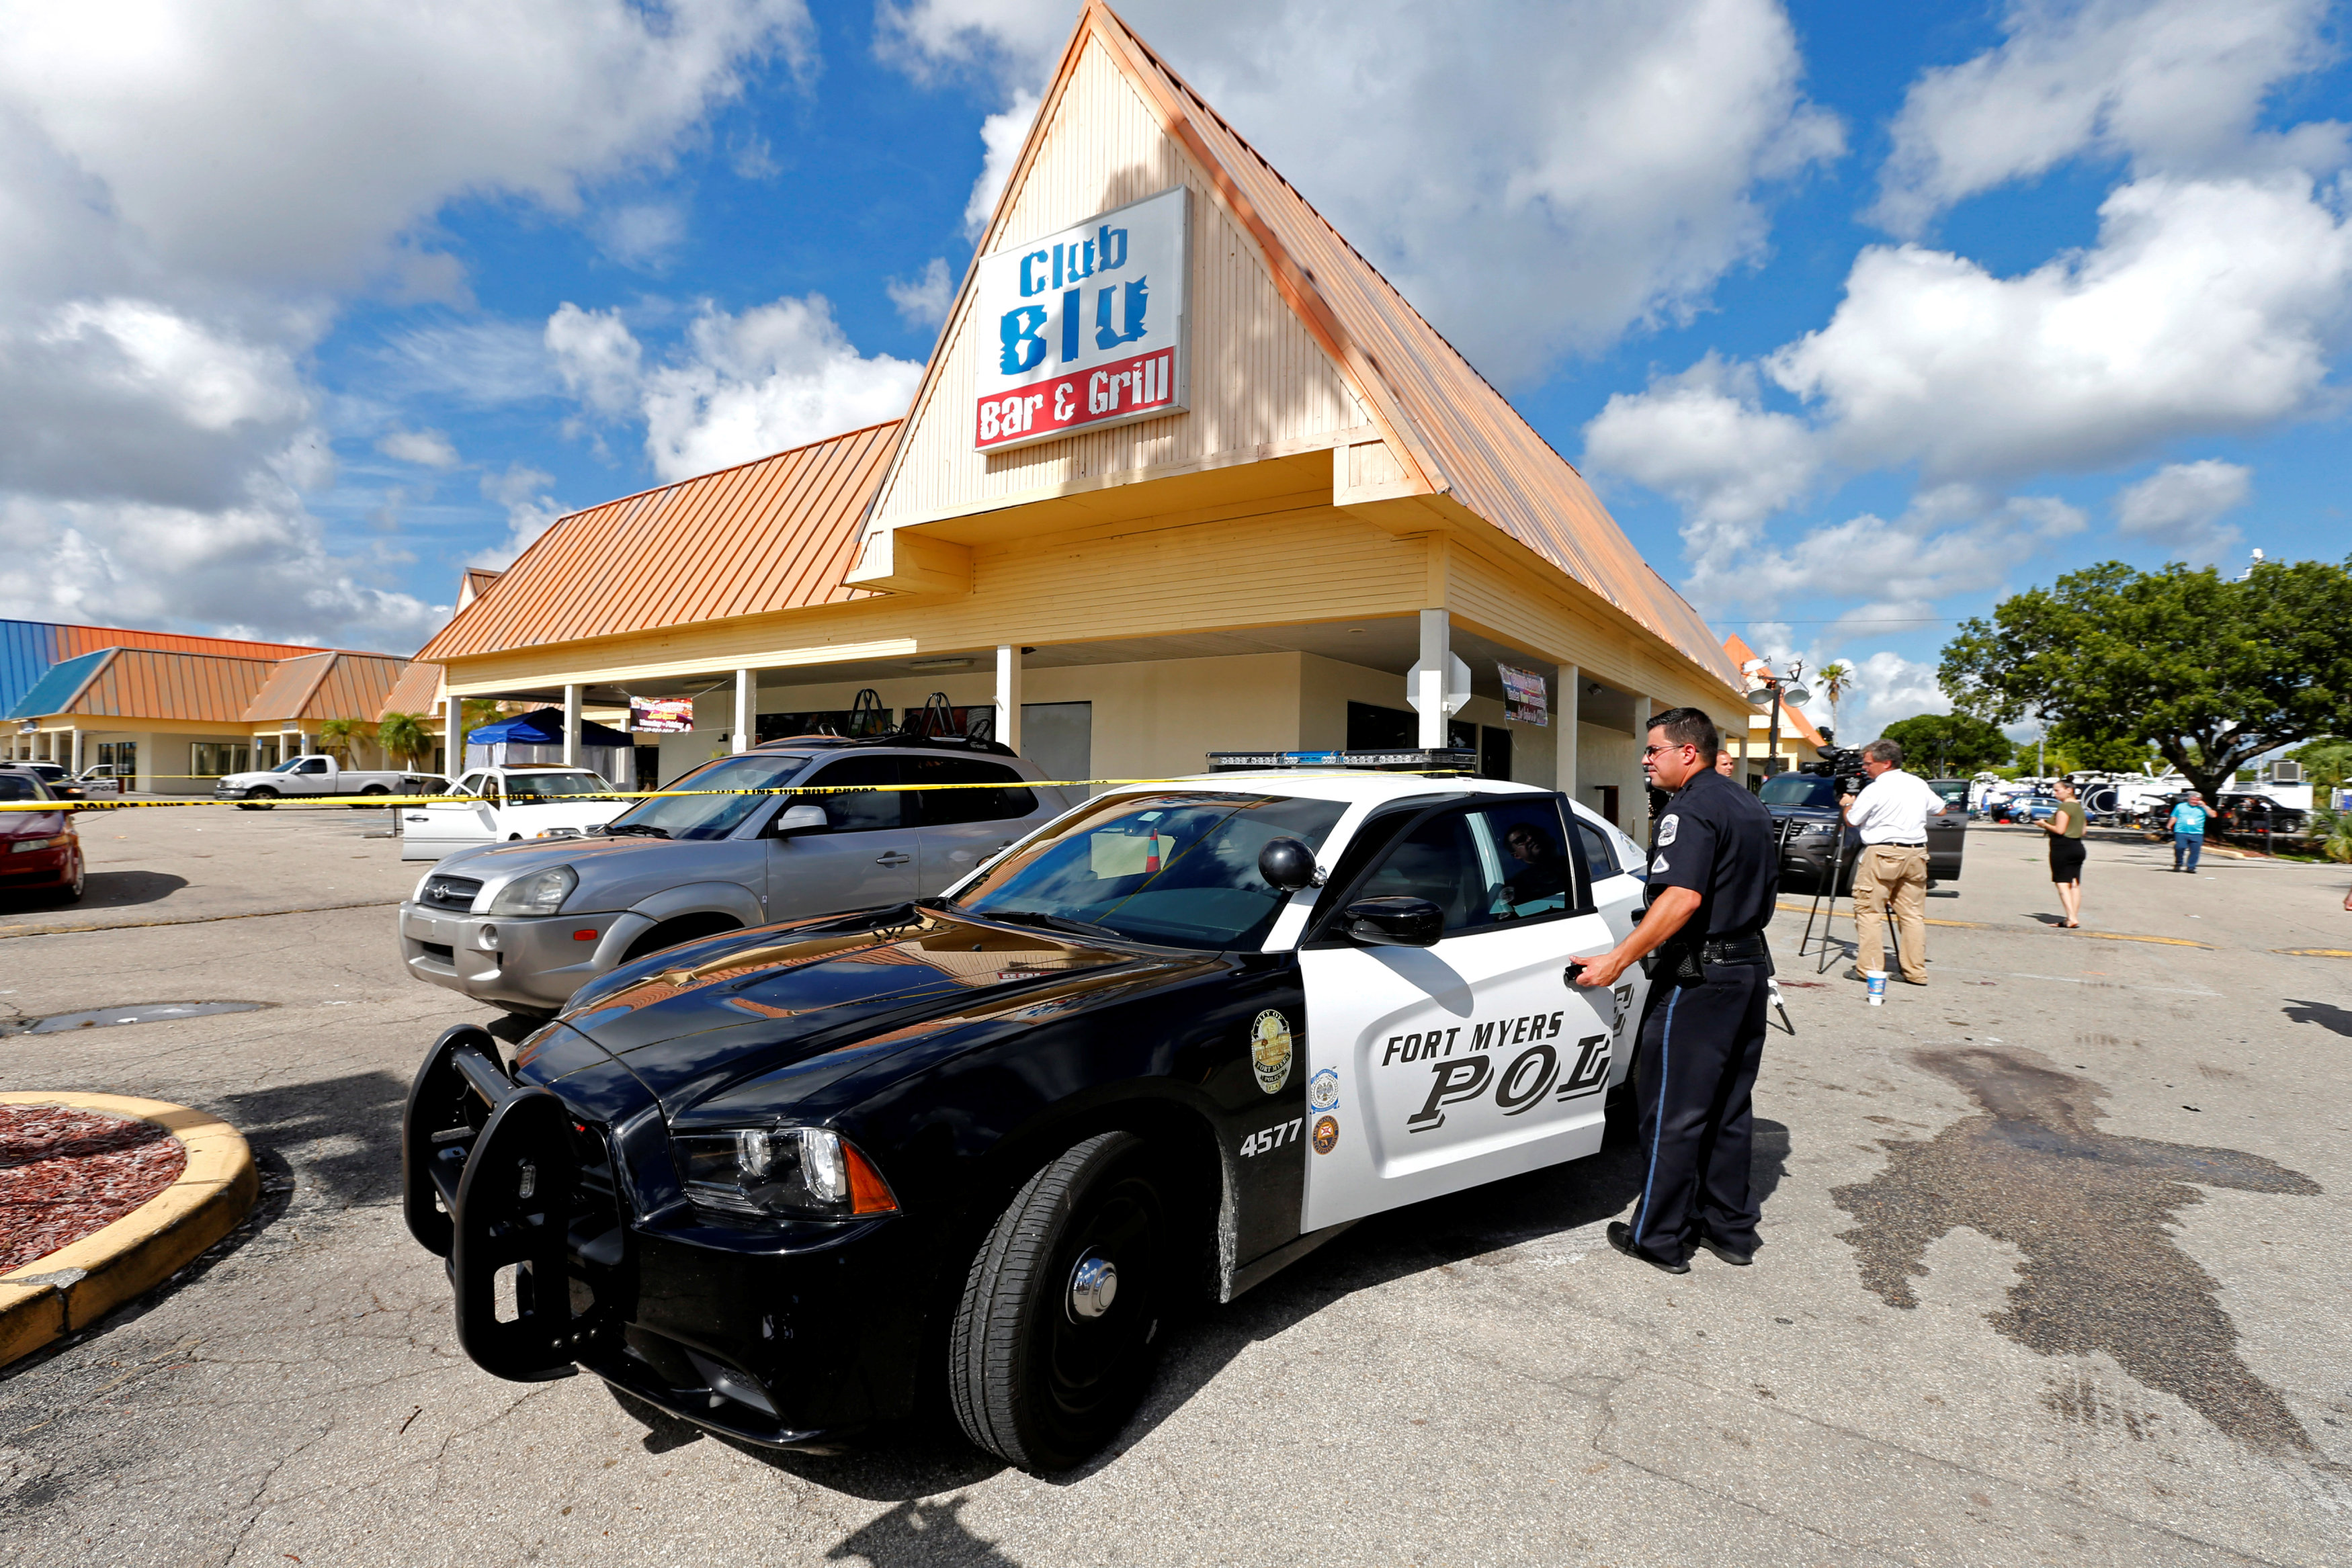 Fort Myers police at scene of Club Blu shooting